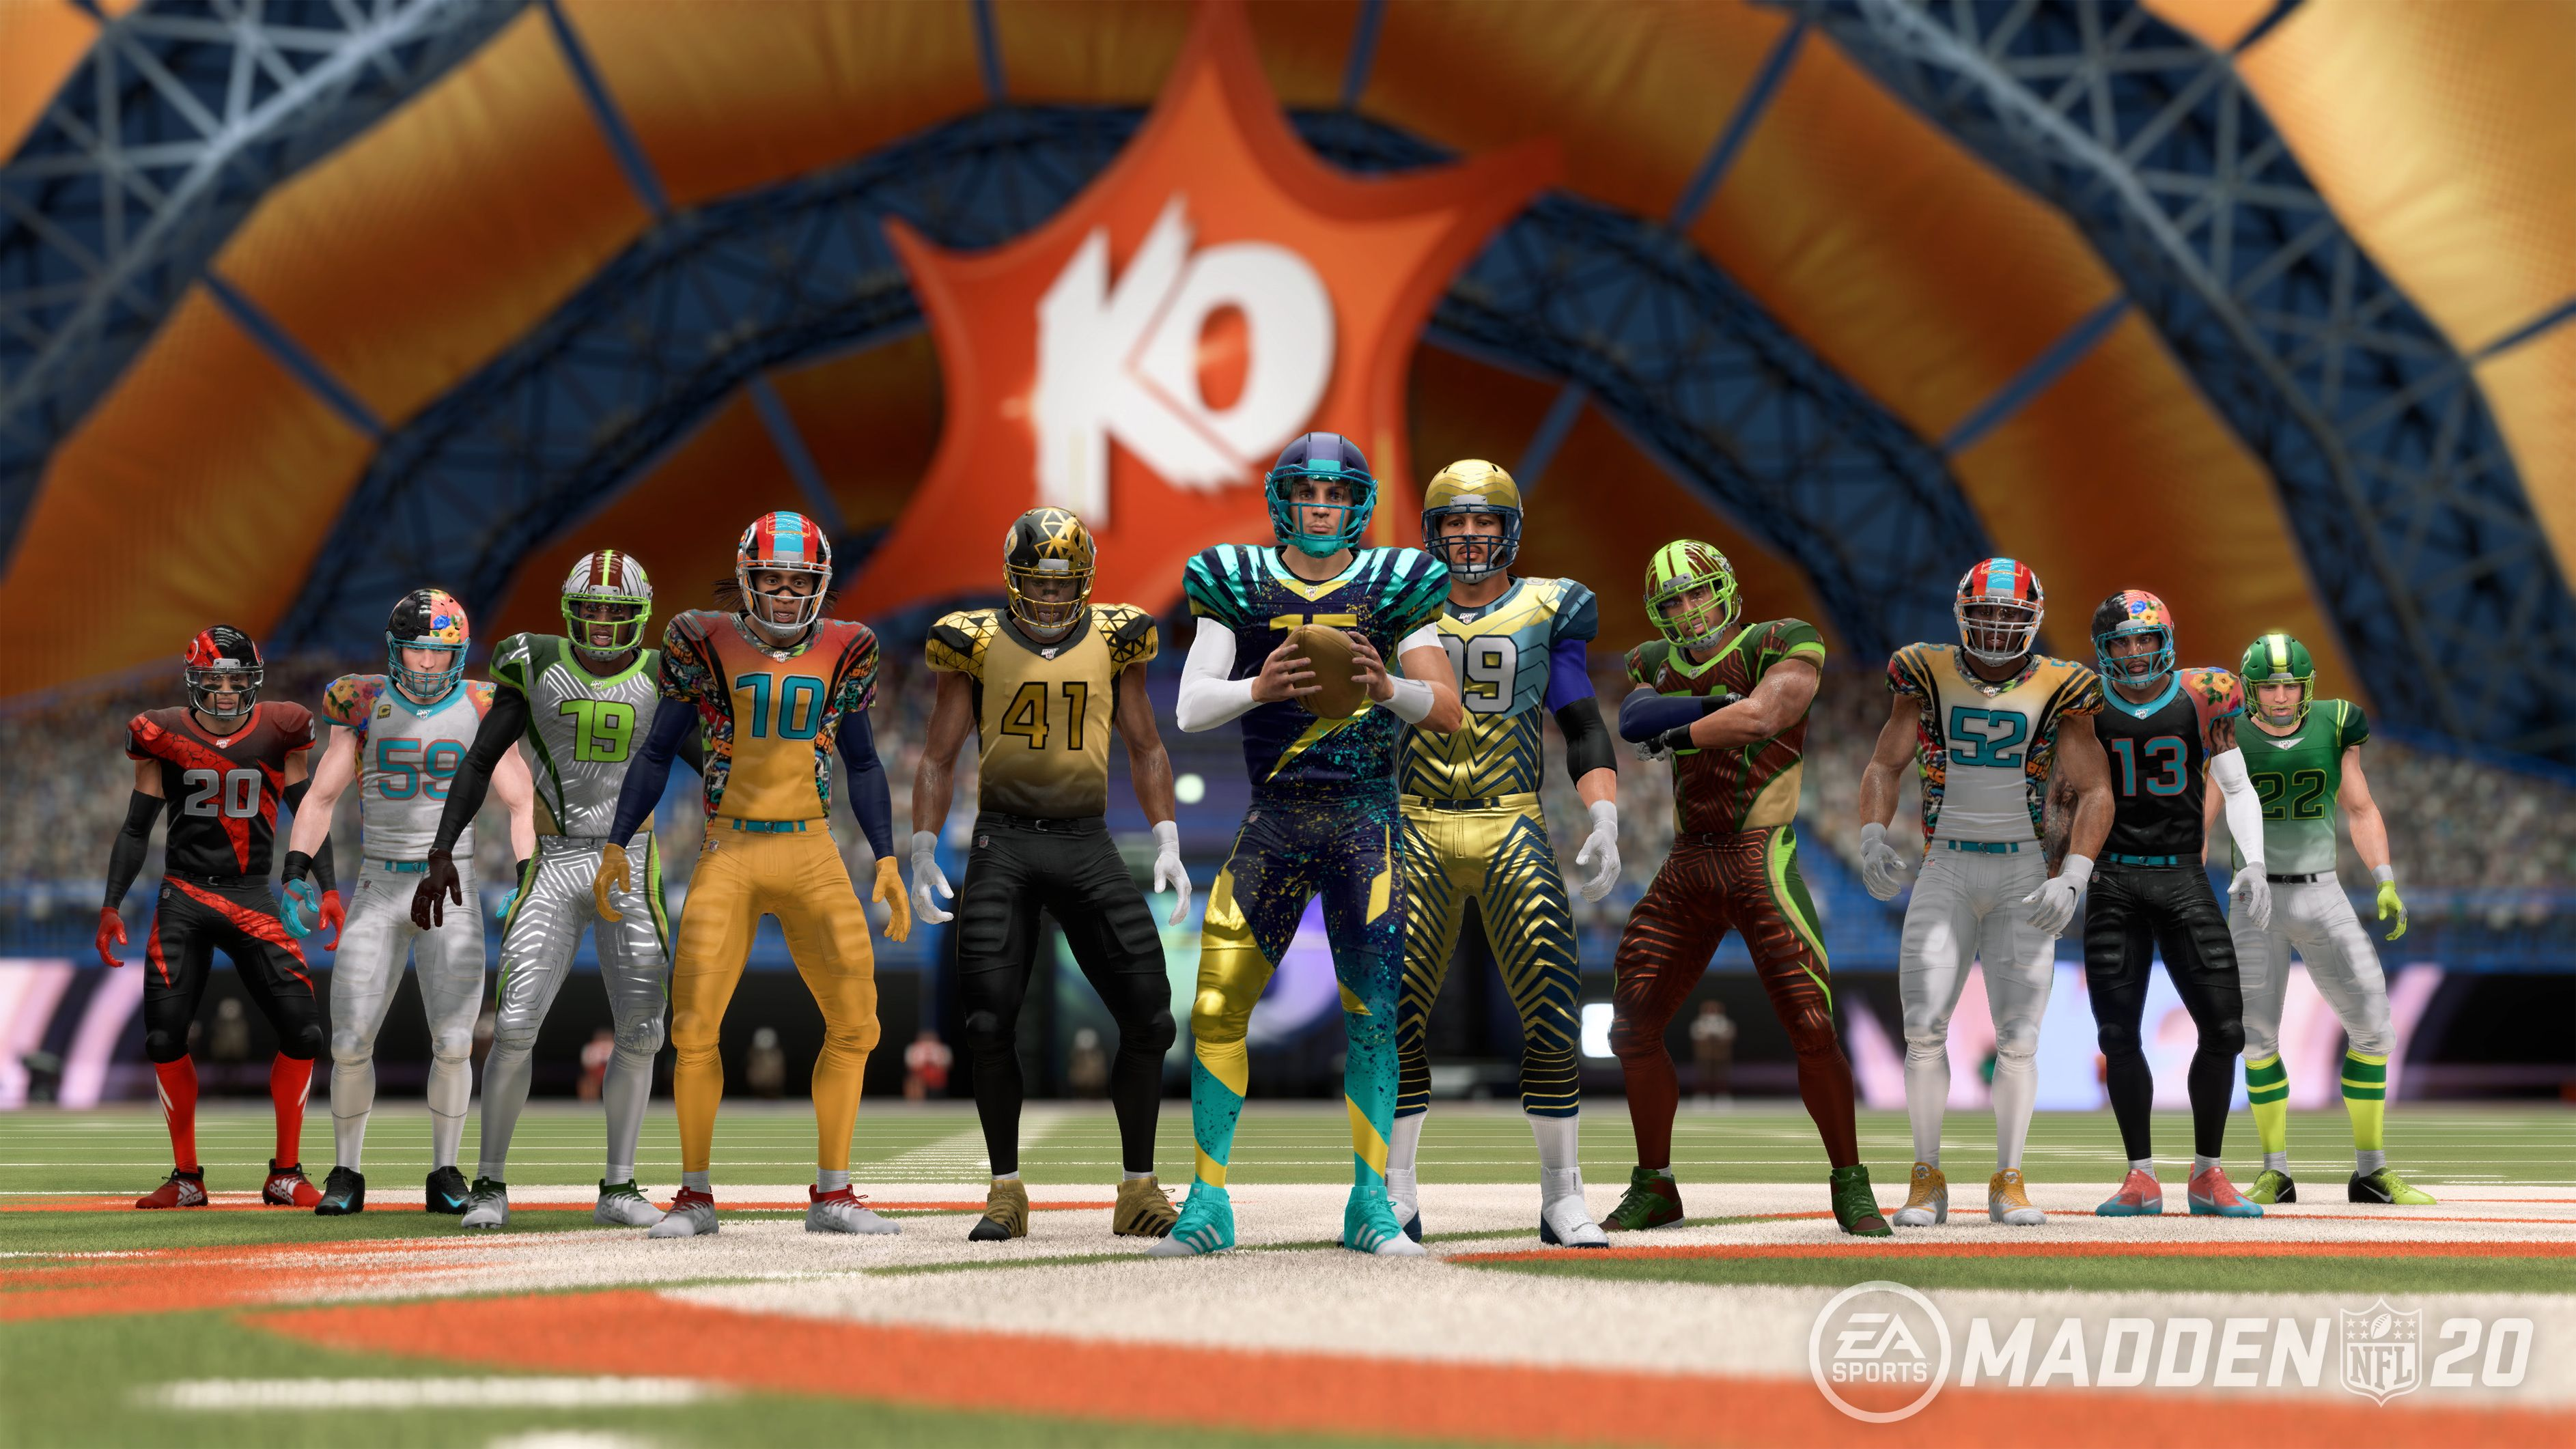 Madden NFL 20's Superstar KO Mode Just Turned Football into a Party Video Game